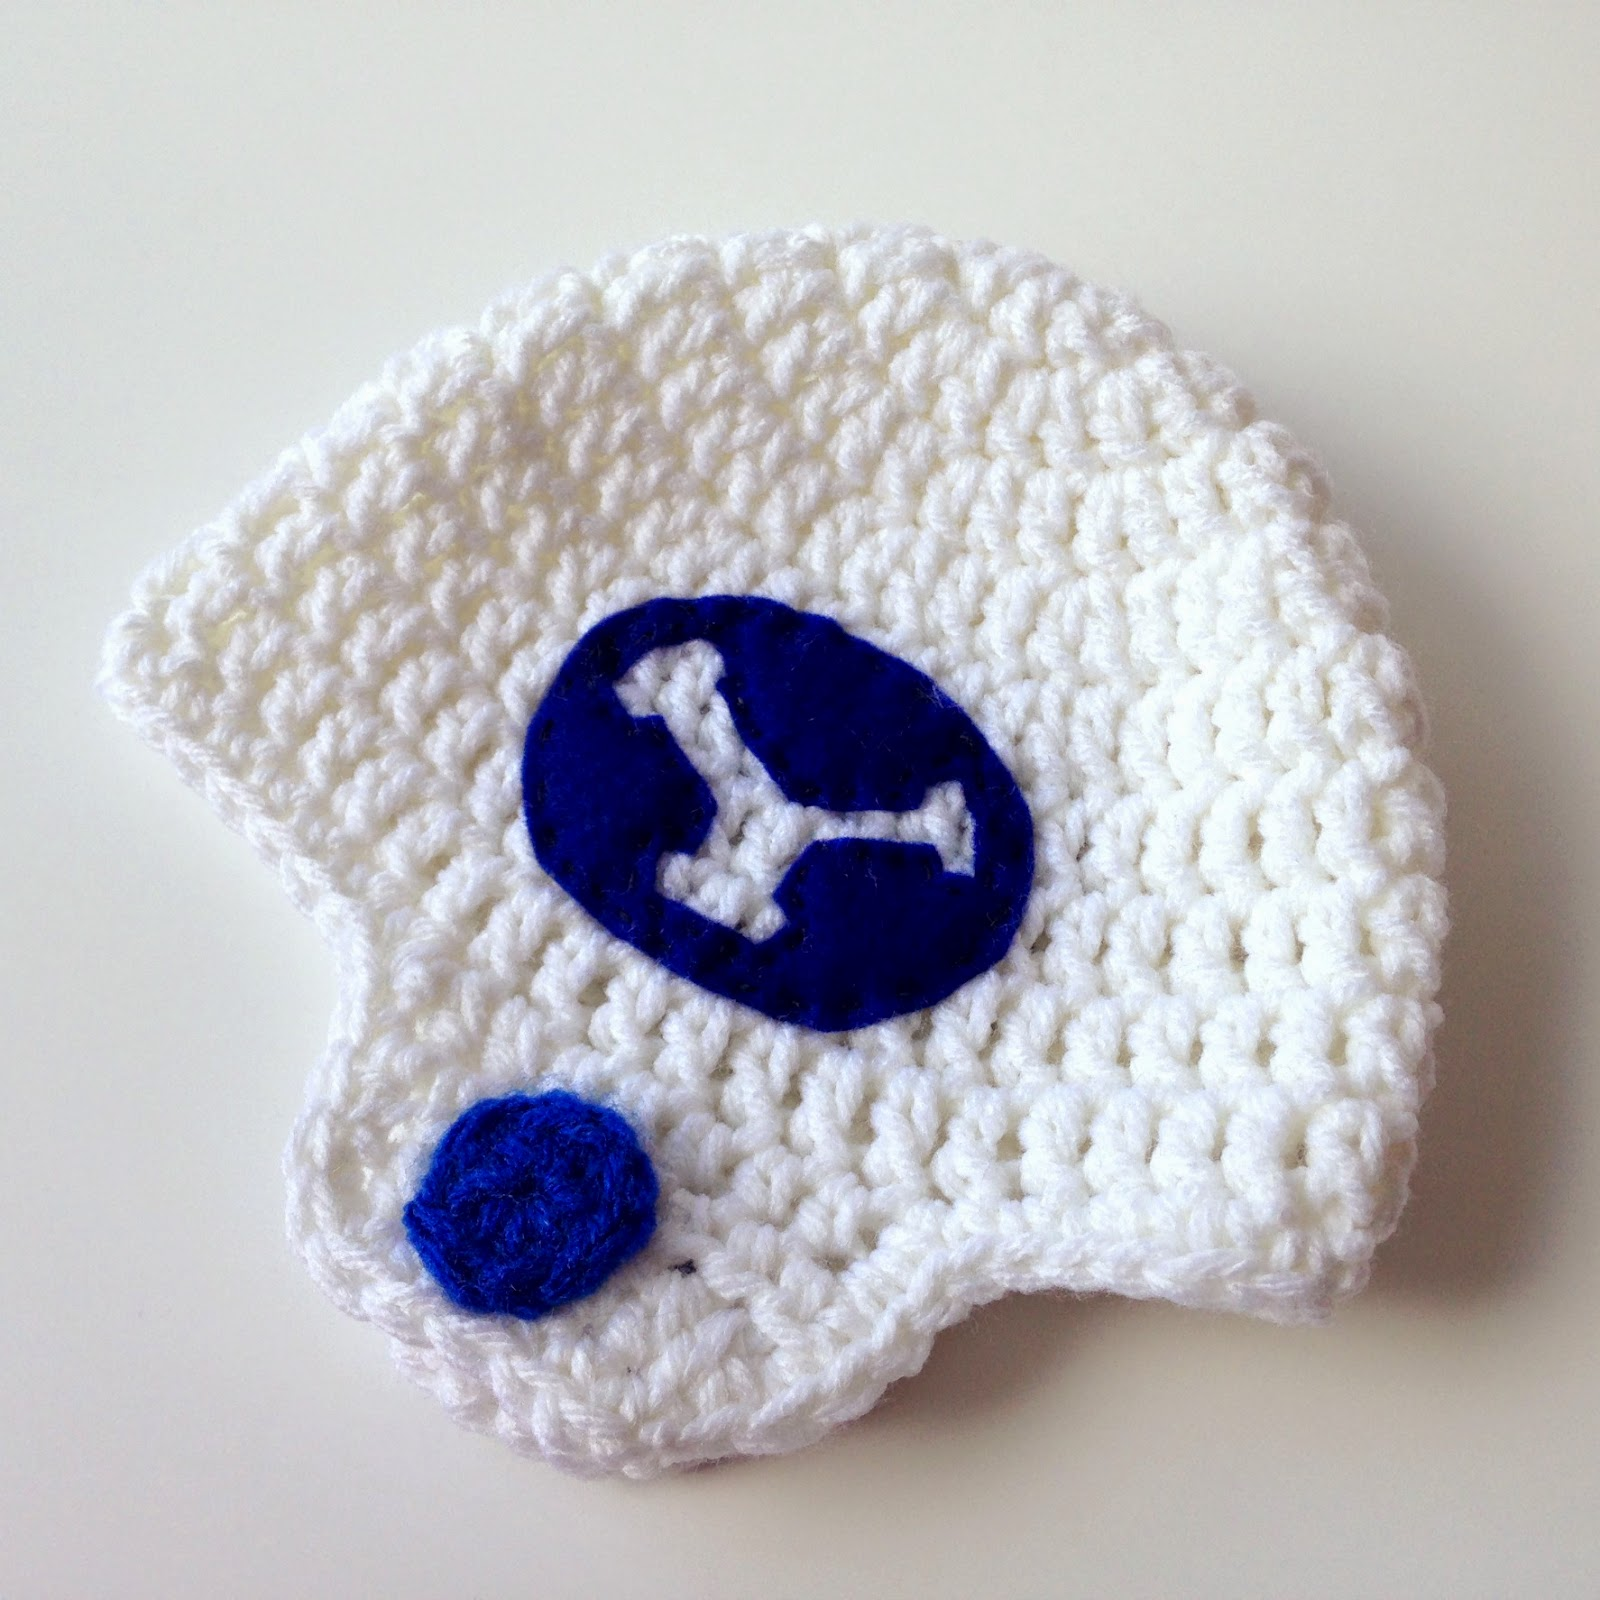 5 little monsters crocheted football helmet hats free pattern bankloansurffo Choice Image